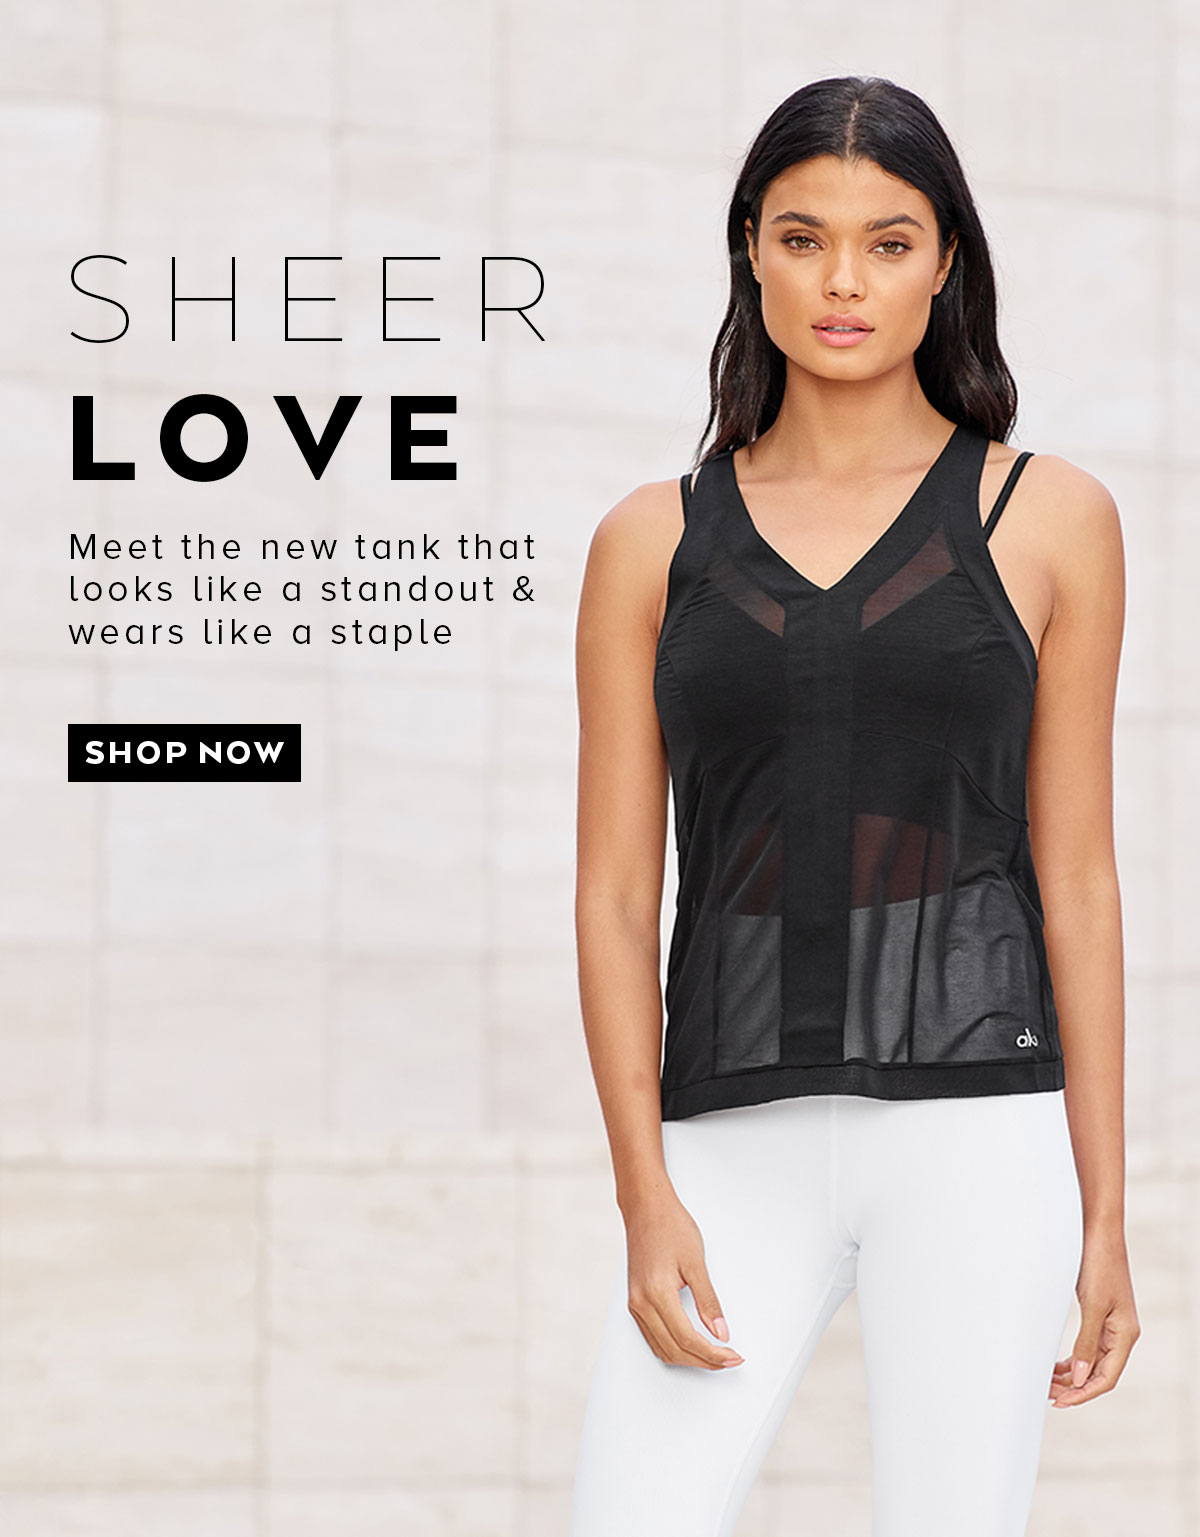 SHEER LOVE - Meet the new tank that looks like a standout & wears like a staple - SHOP NOW